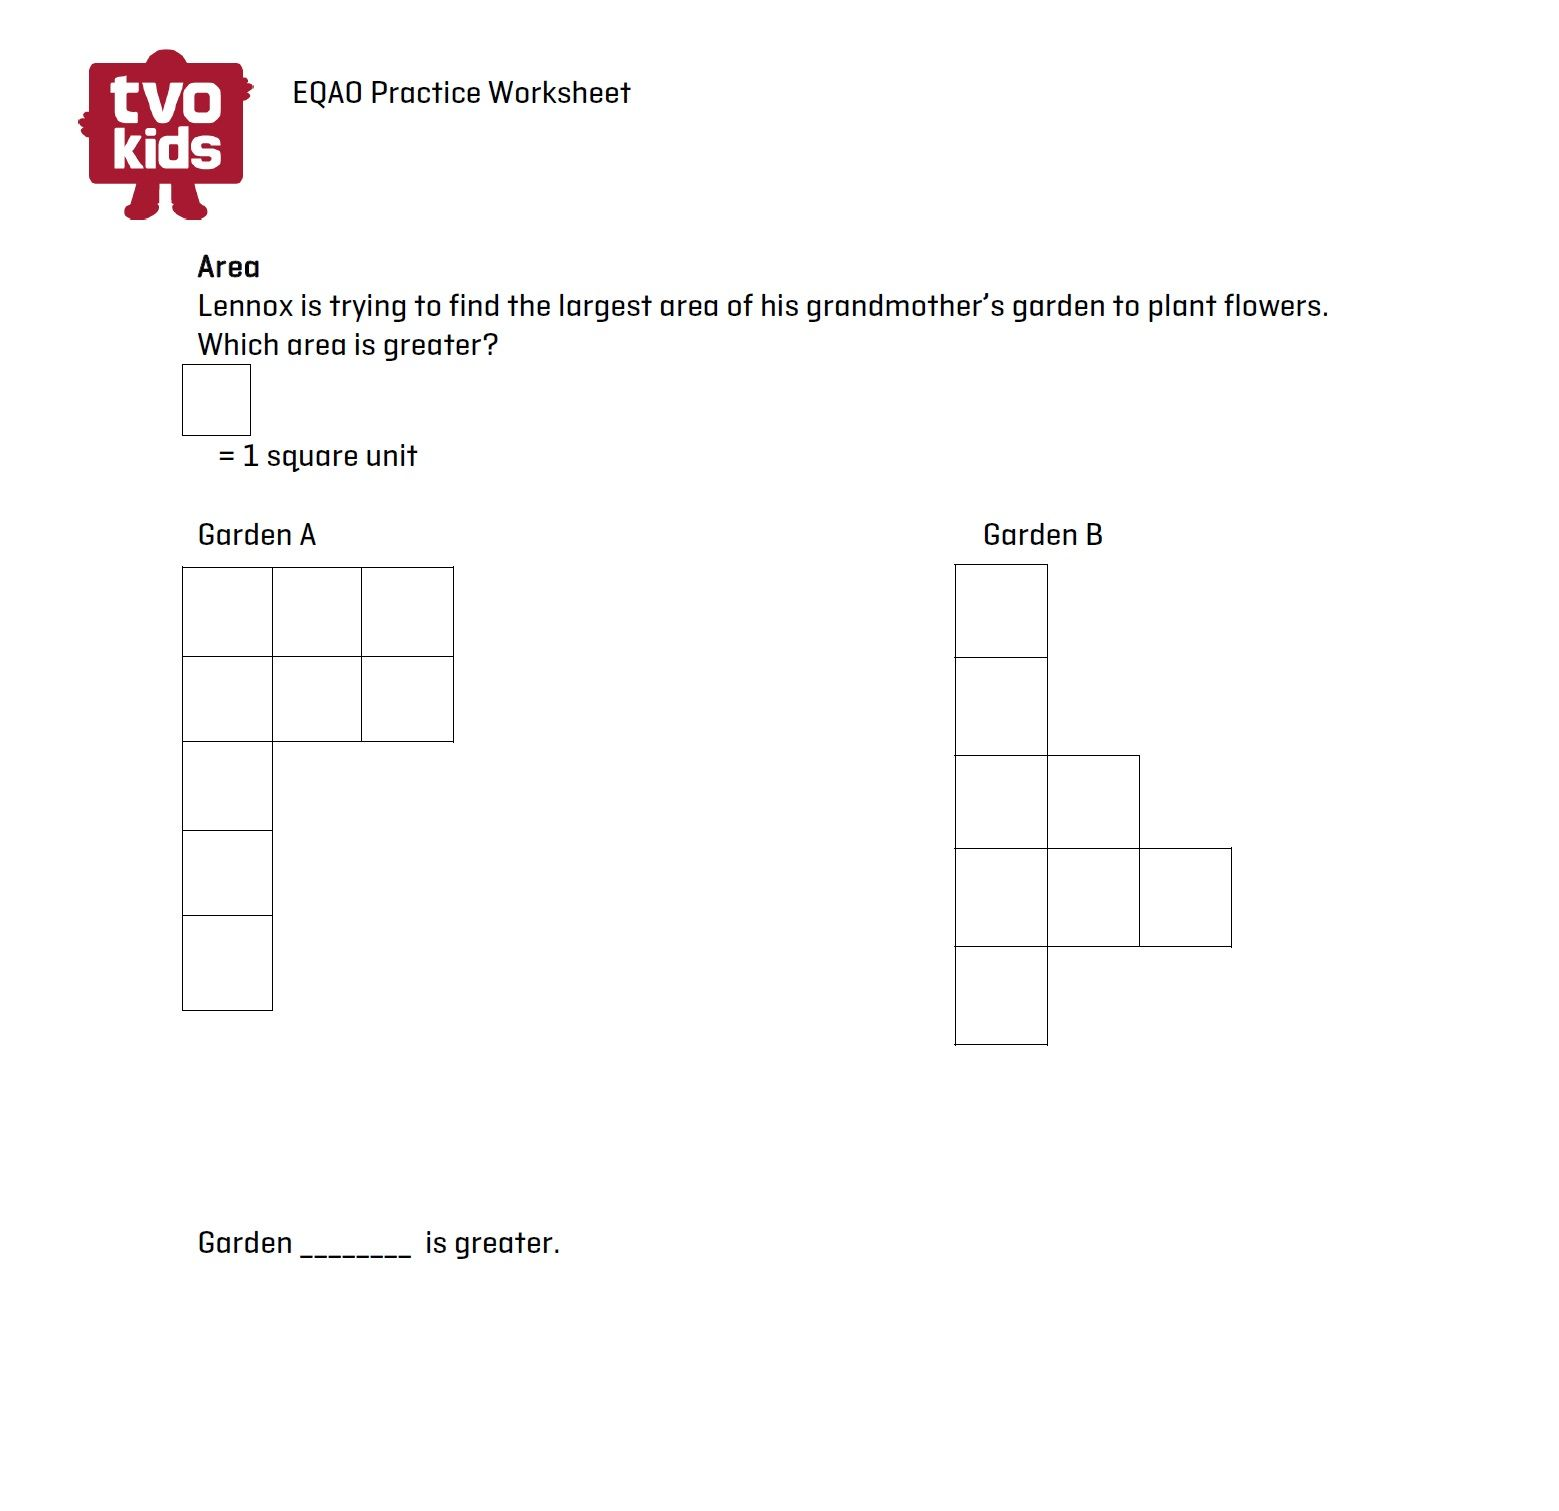 Eqao Practice Worksheet